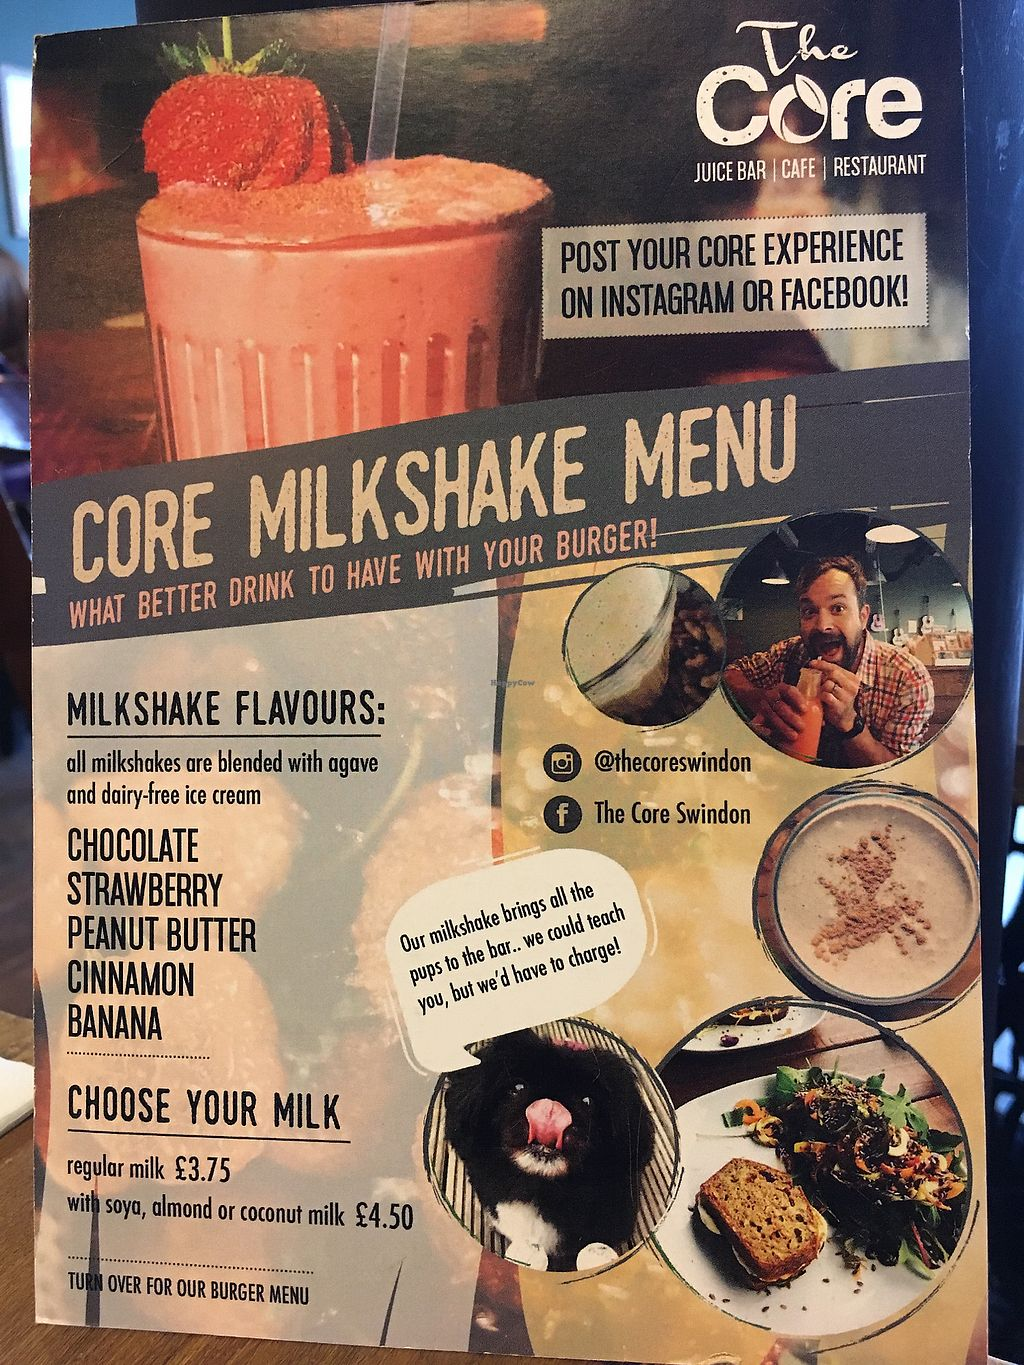 "Photo of The Core  by <a href=""/members/profile/radiocaz"">radiocaz</a> <br/>Milkshake menu - vegans penalised! <br/> December 23, 2017  - <a href='/contact/abuse/image/91024/338346'>Report</a>"